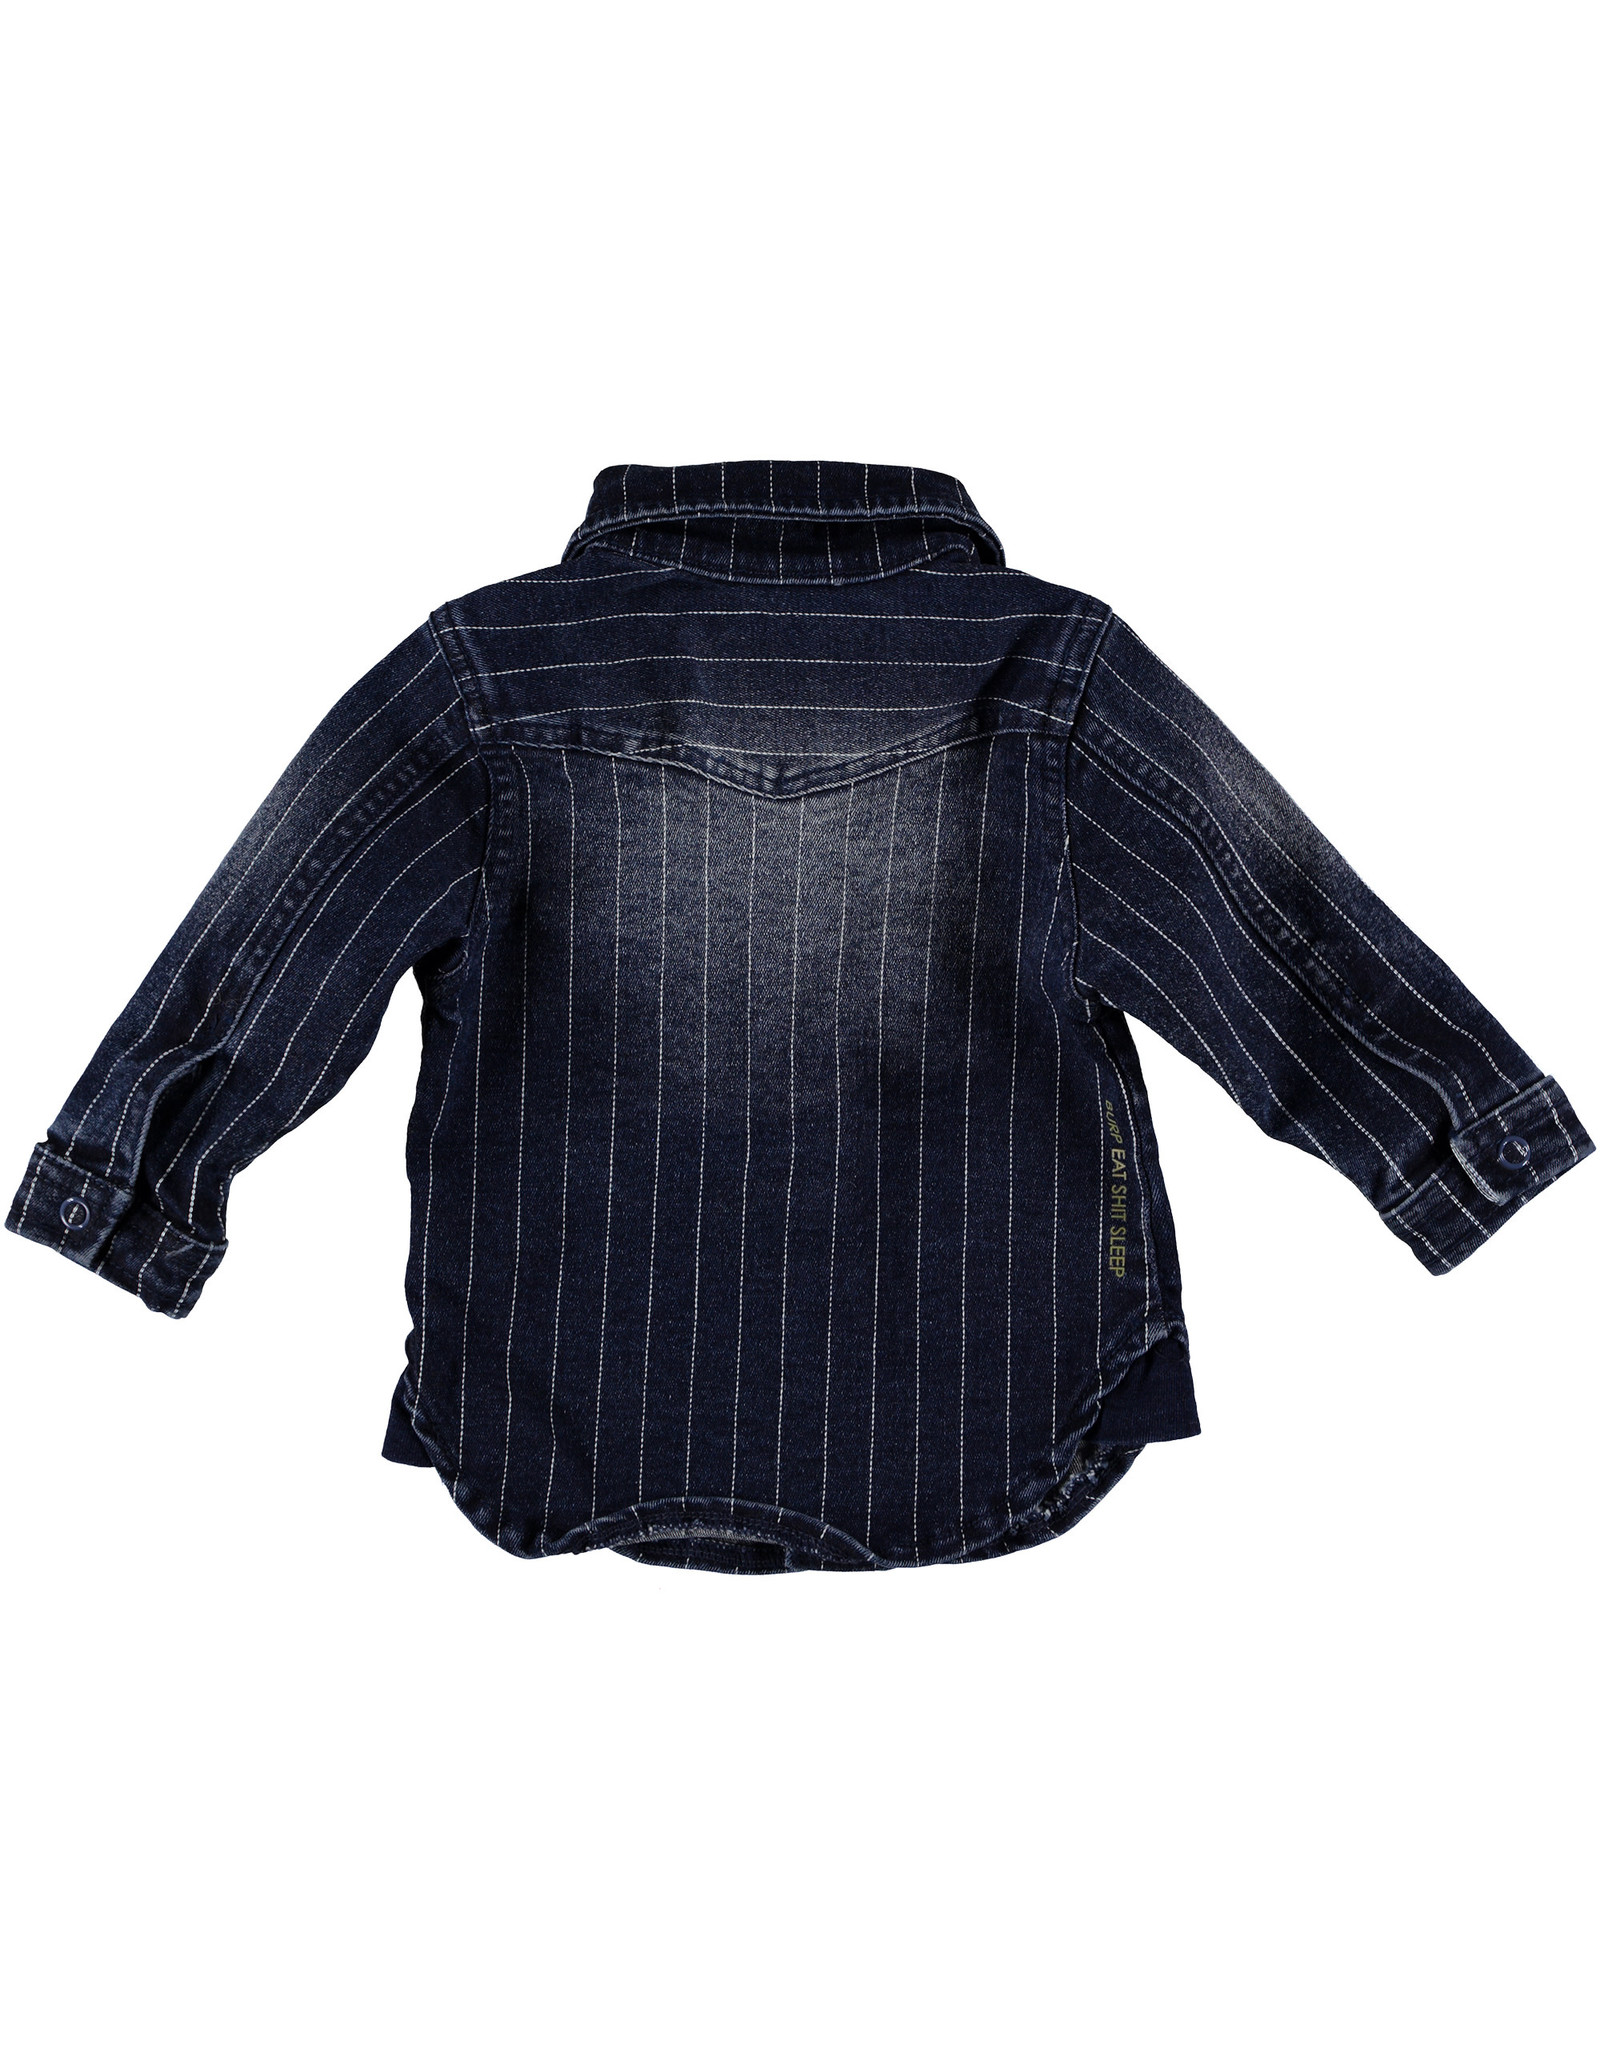 BESS Blouse Denim striped  Stone wash